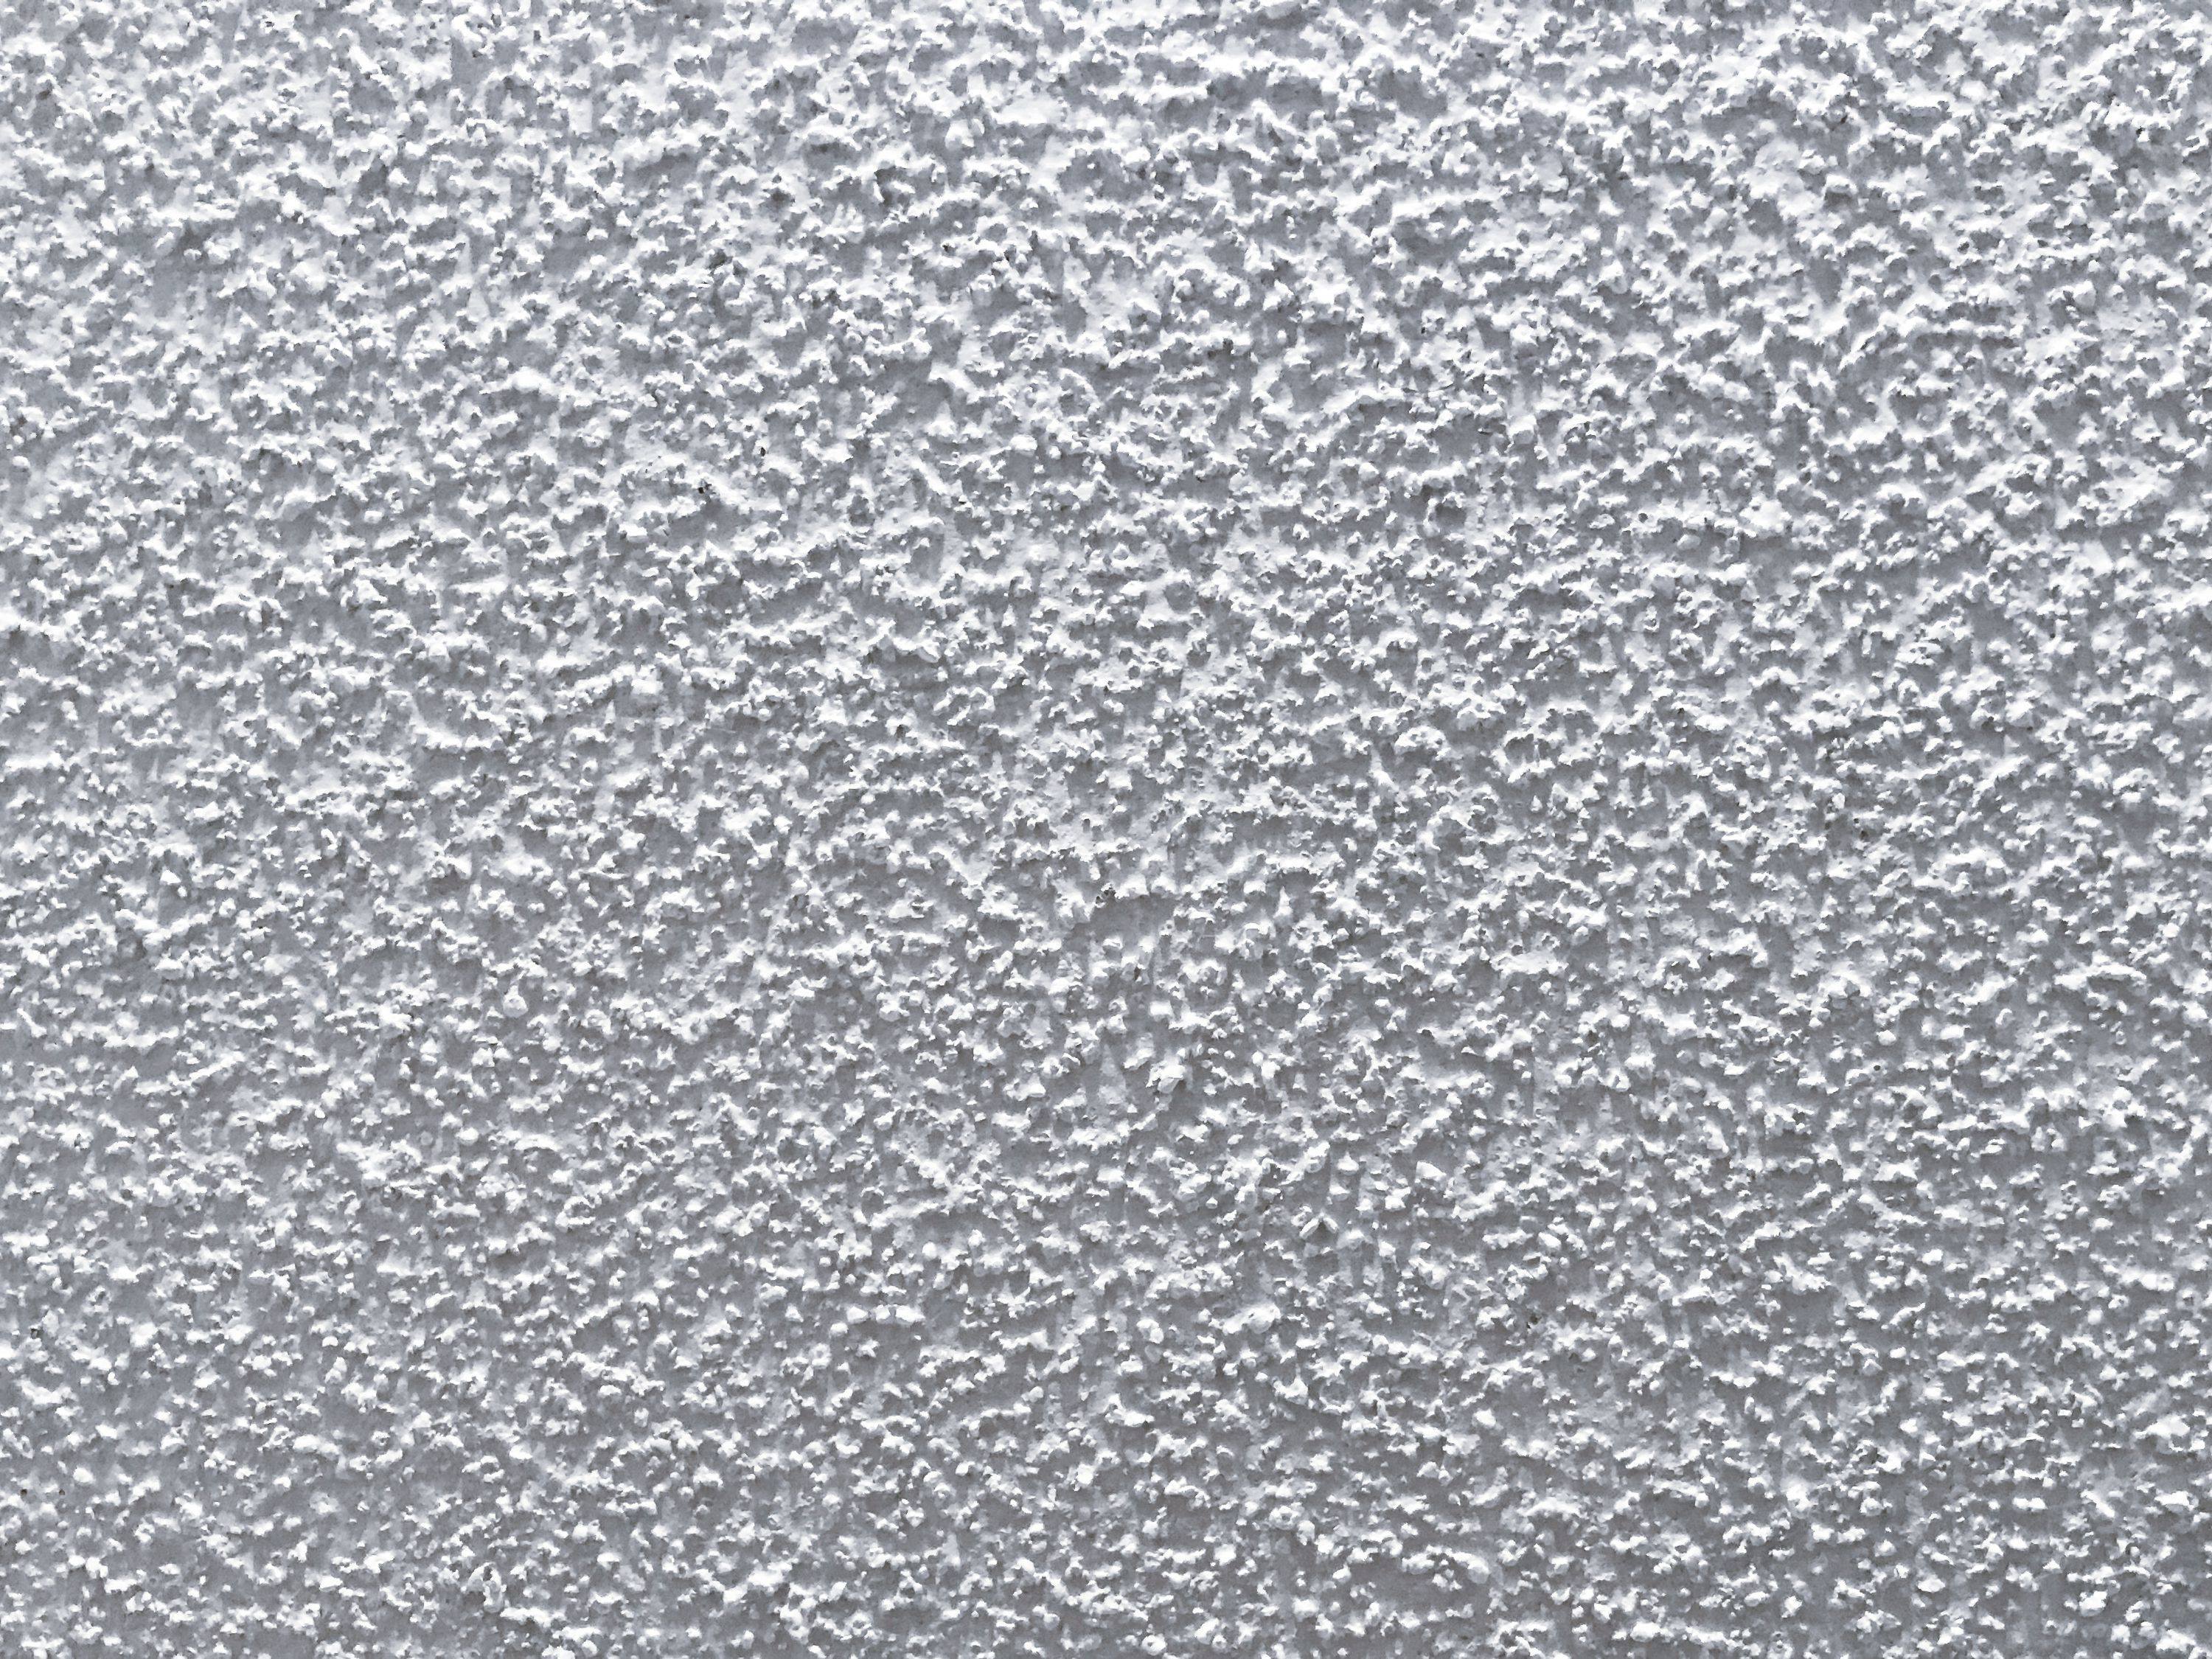 How To Cover Or Insulate Over A Popcorn Ceiling